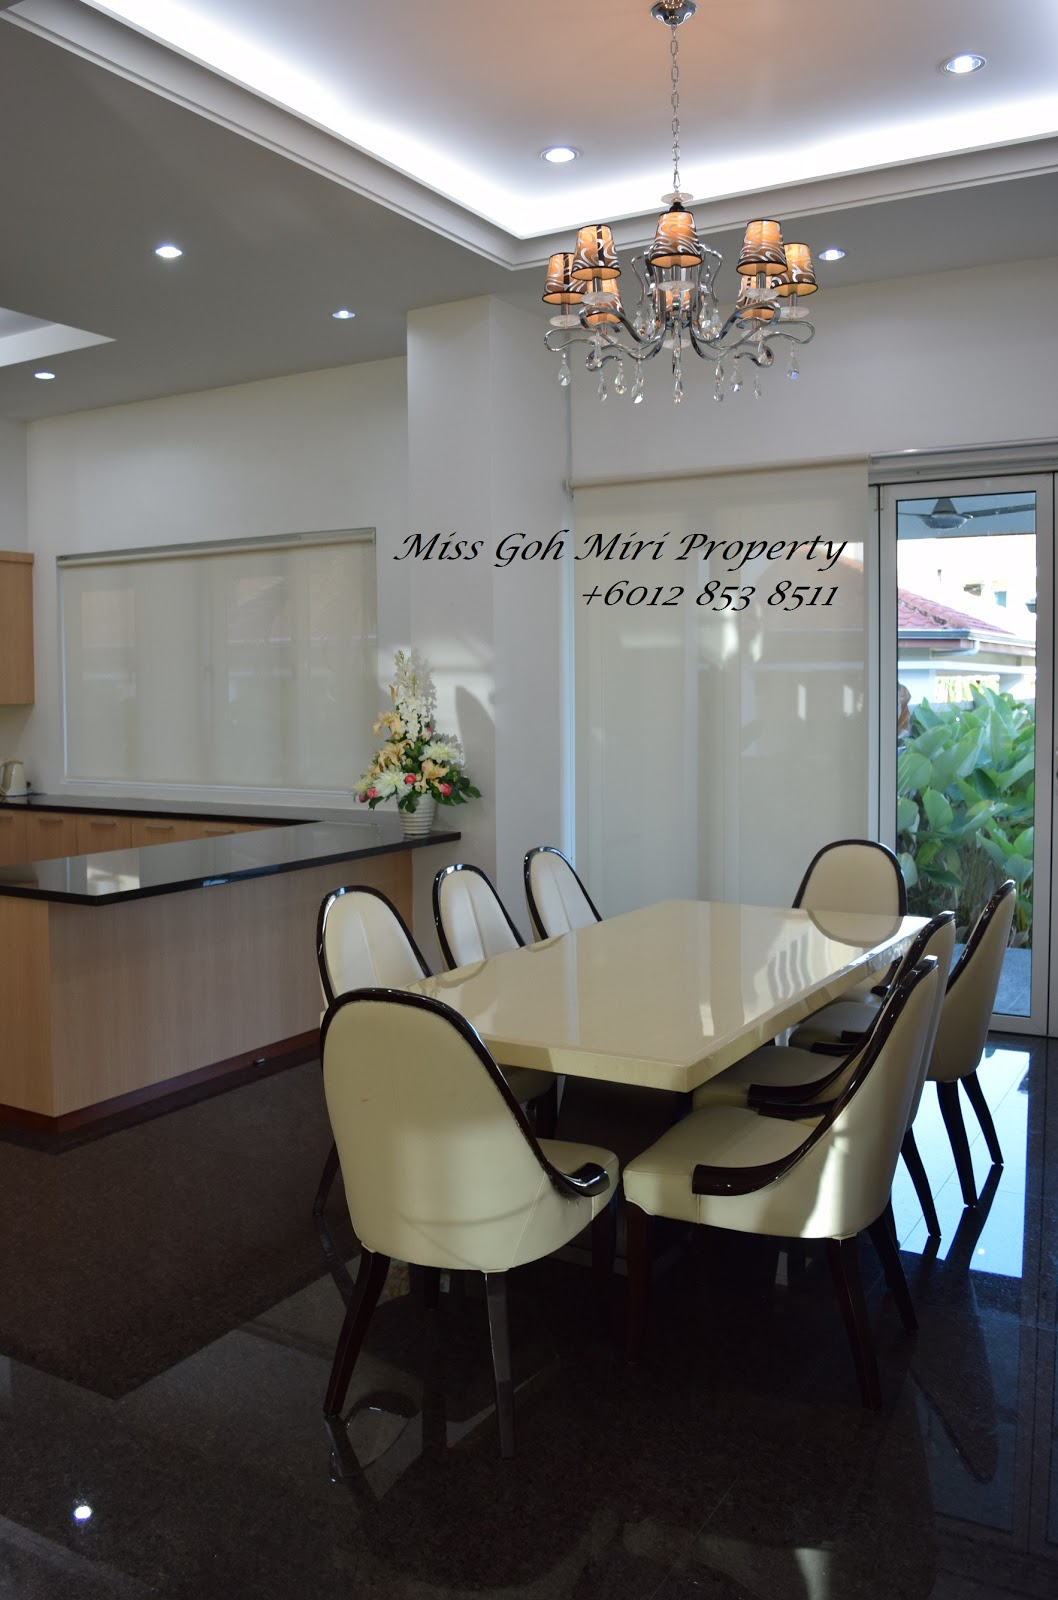 House for sale rent in miri sarawak malaysia double